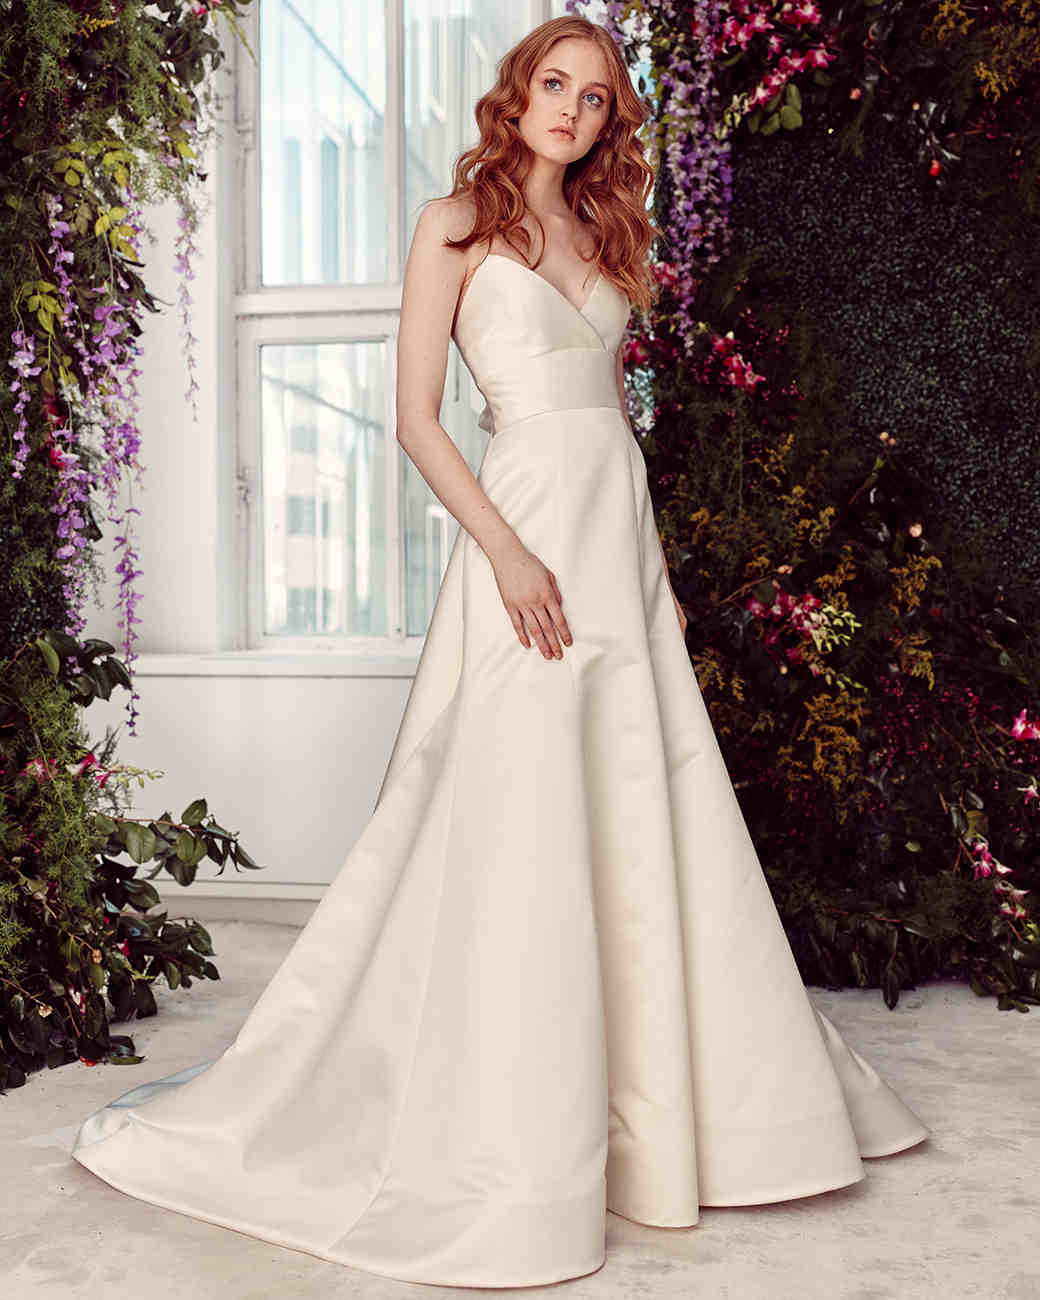 alyne by rita vinieris strapless a-line with sash wedding dress spring 2020